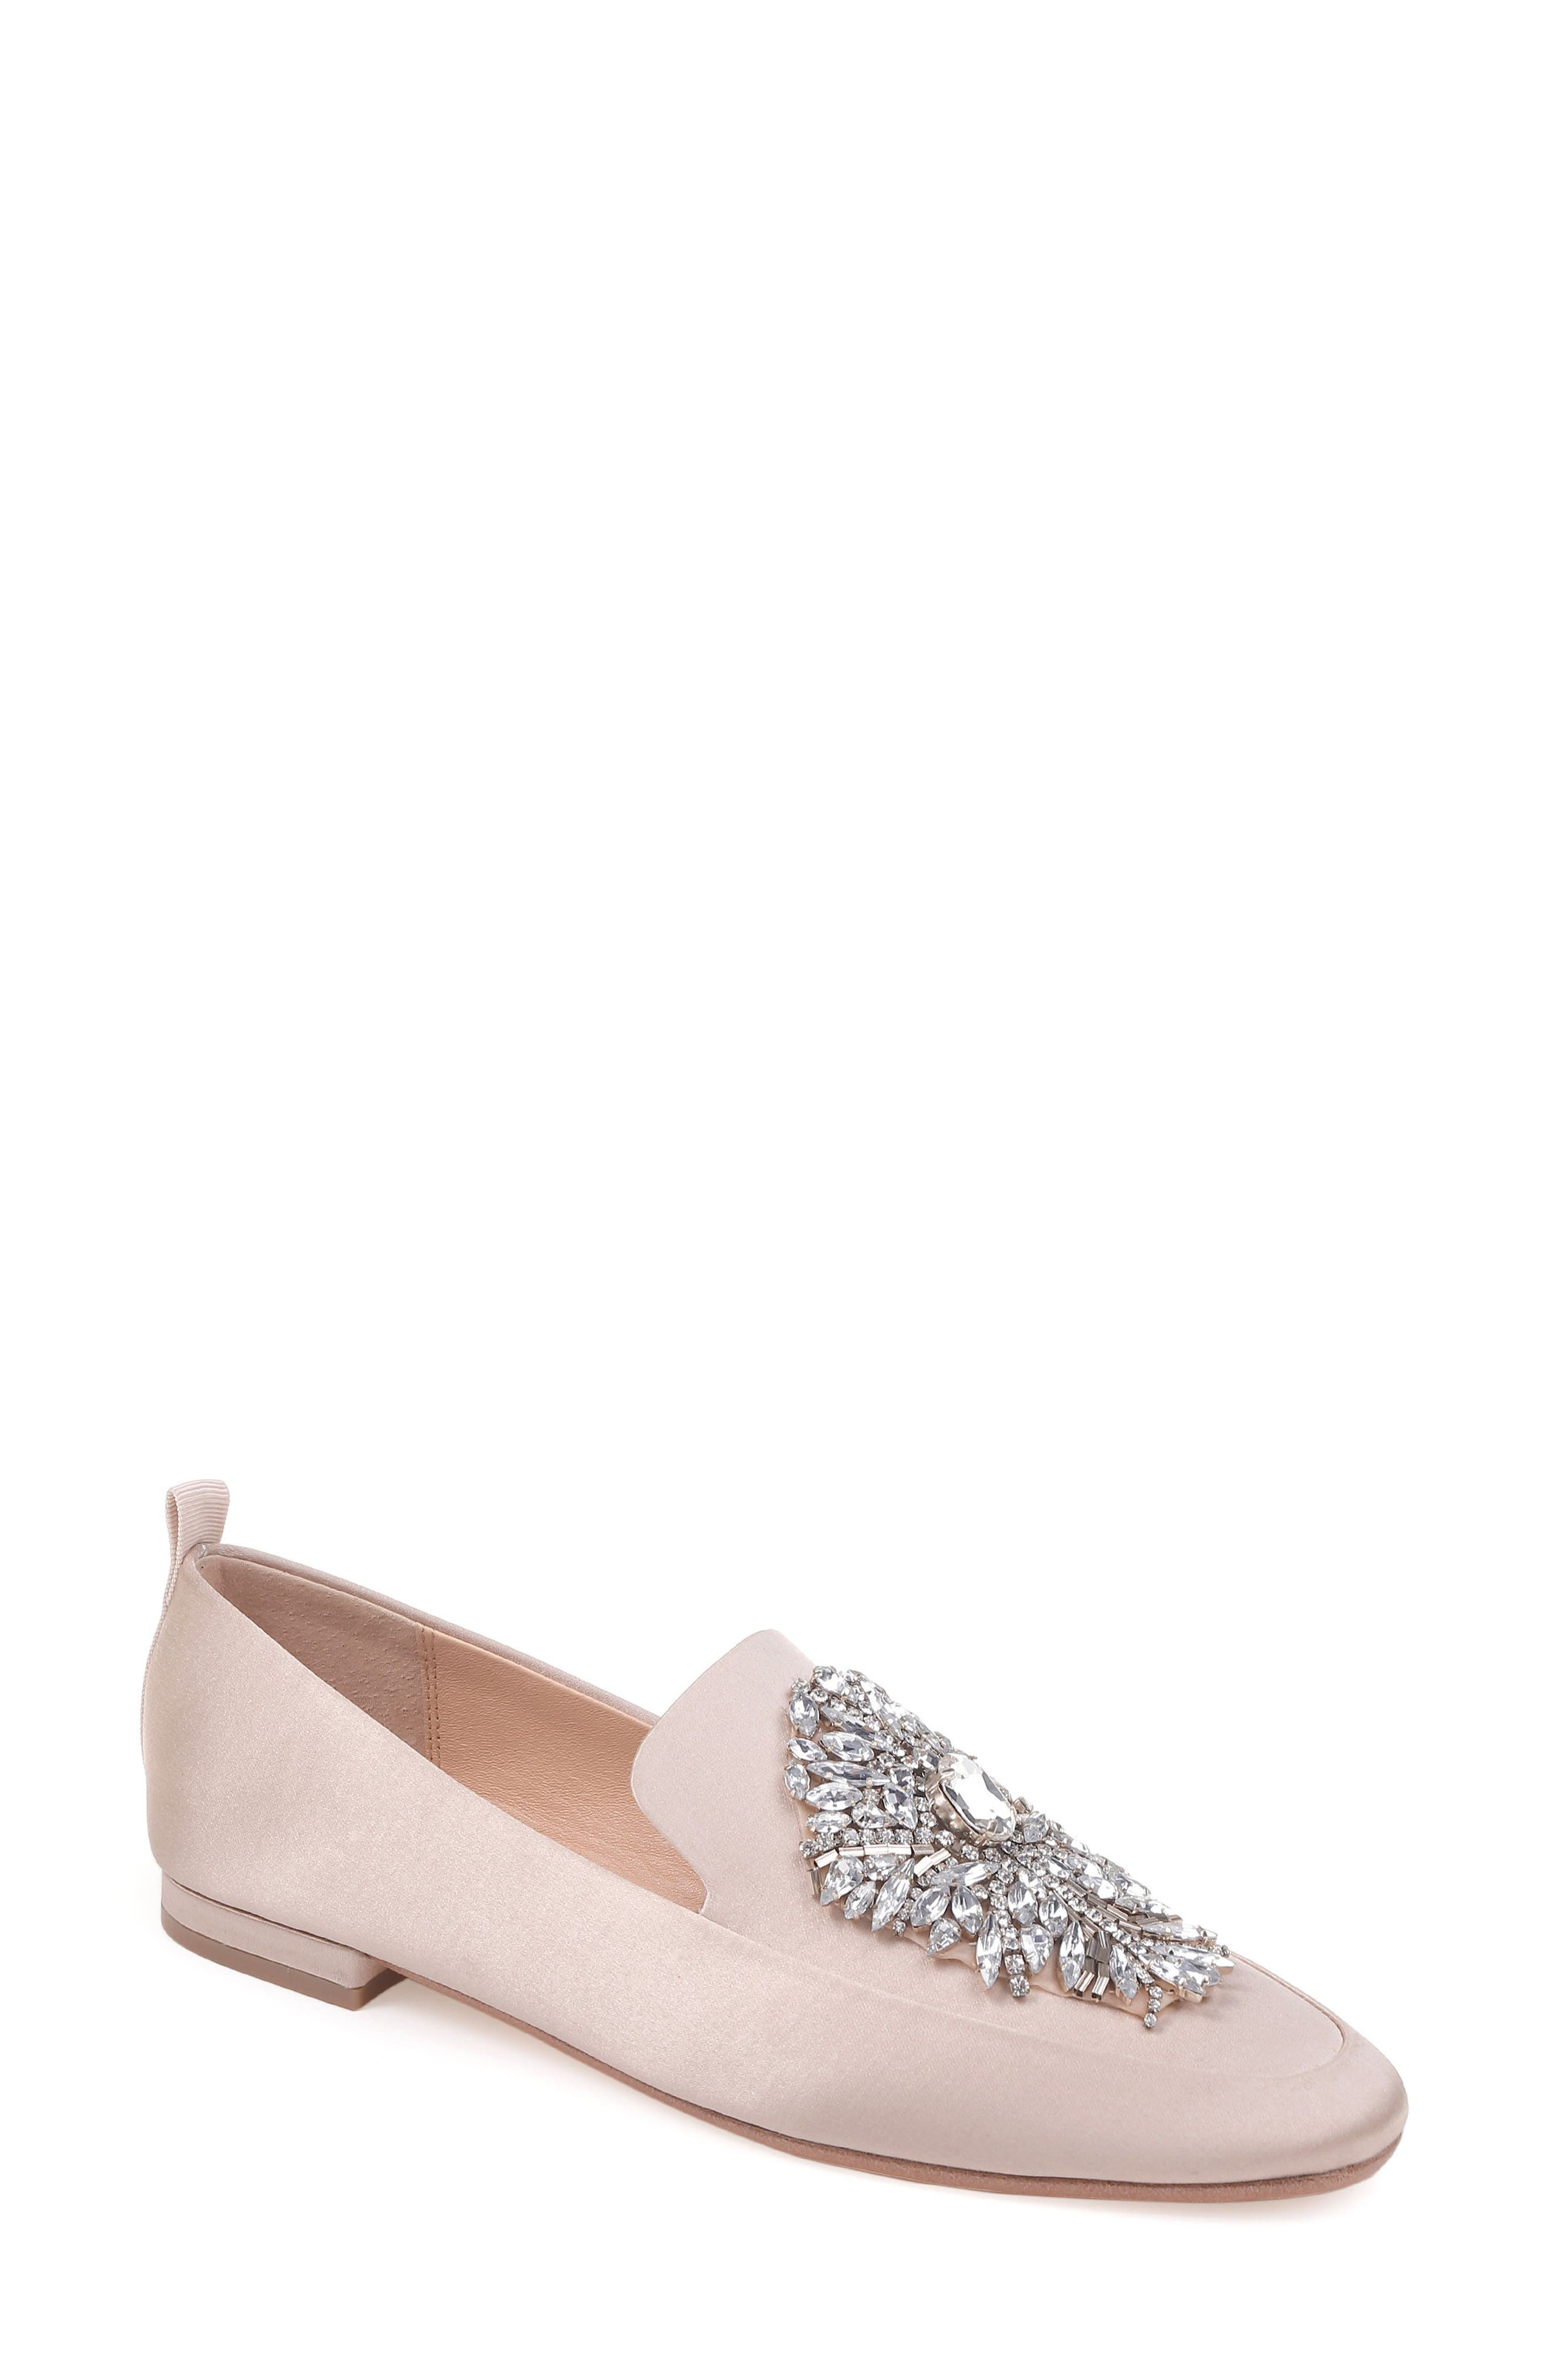 Salma Crystal Embellished Loafer,                         Main,                         color, Nude Satin